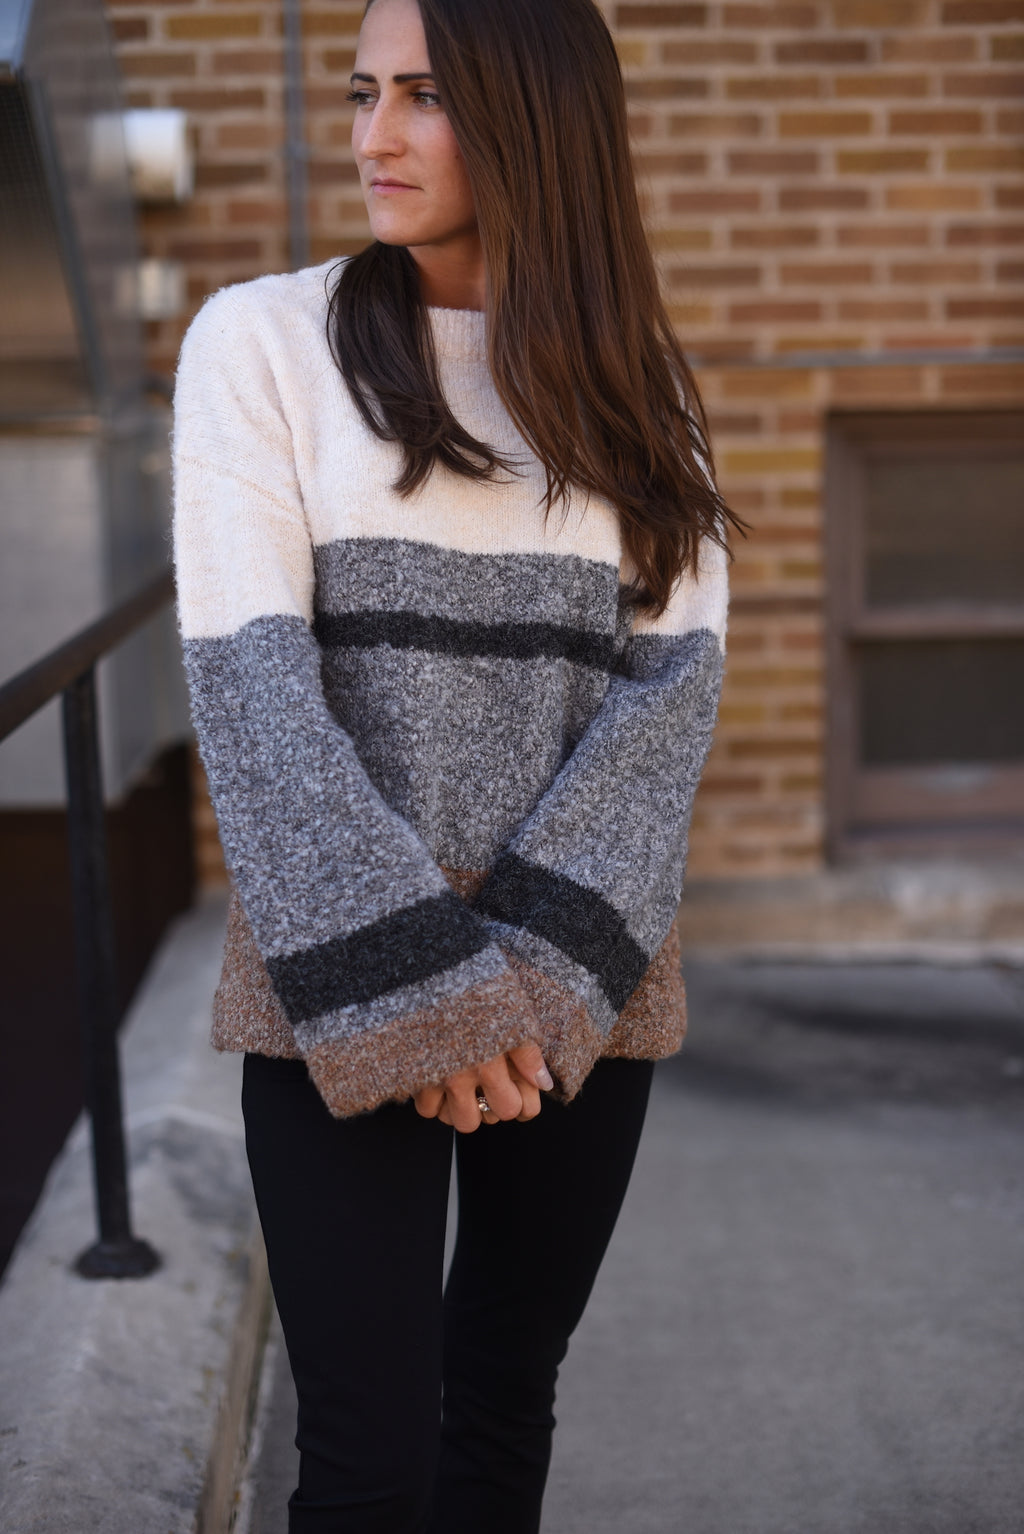 Near To You Sweater